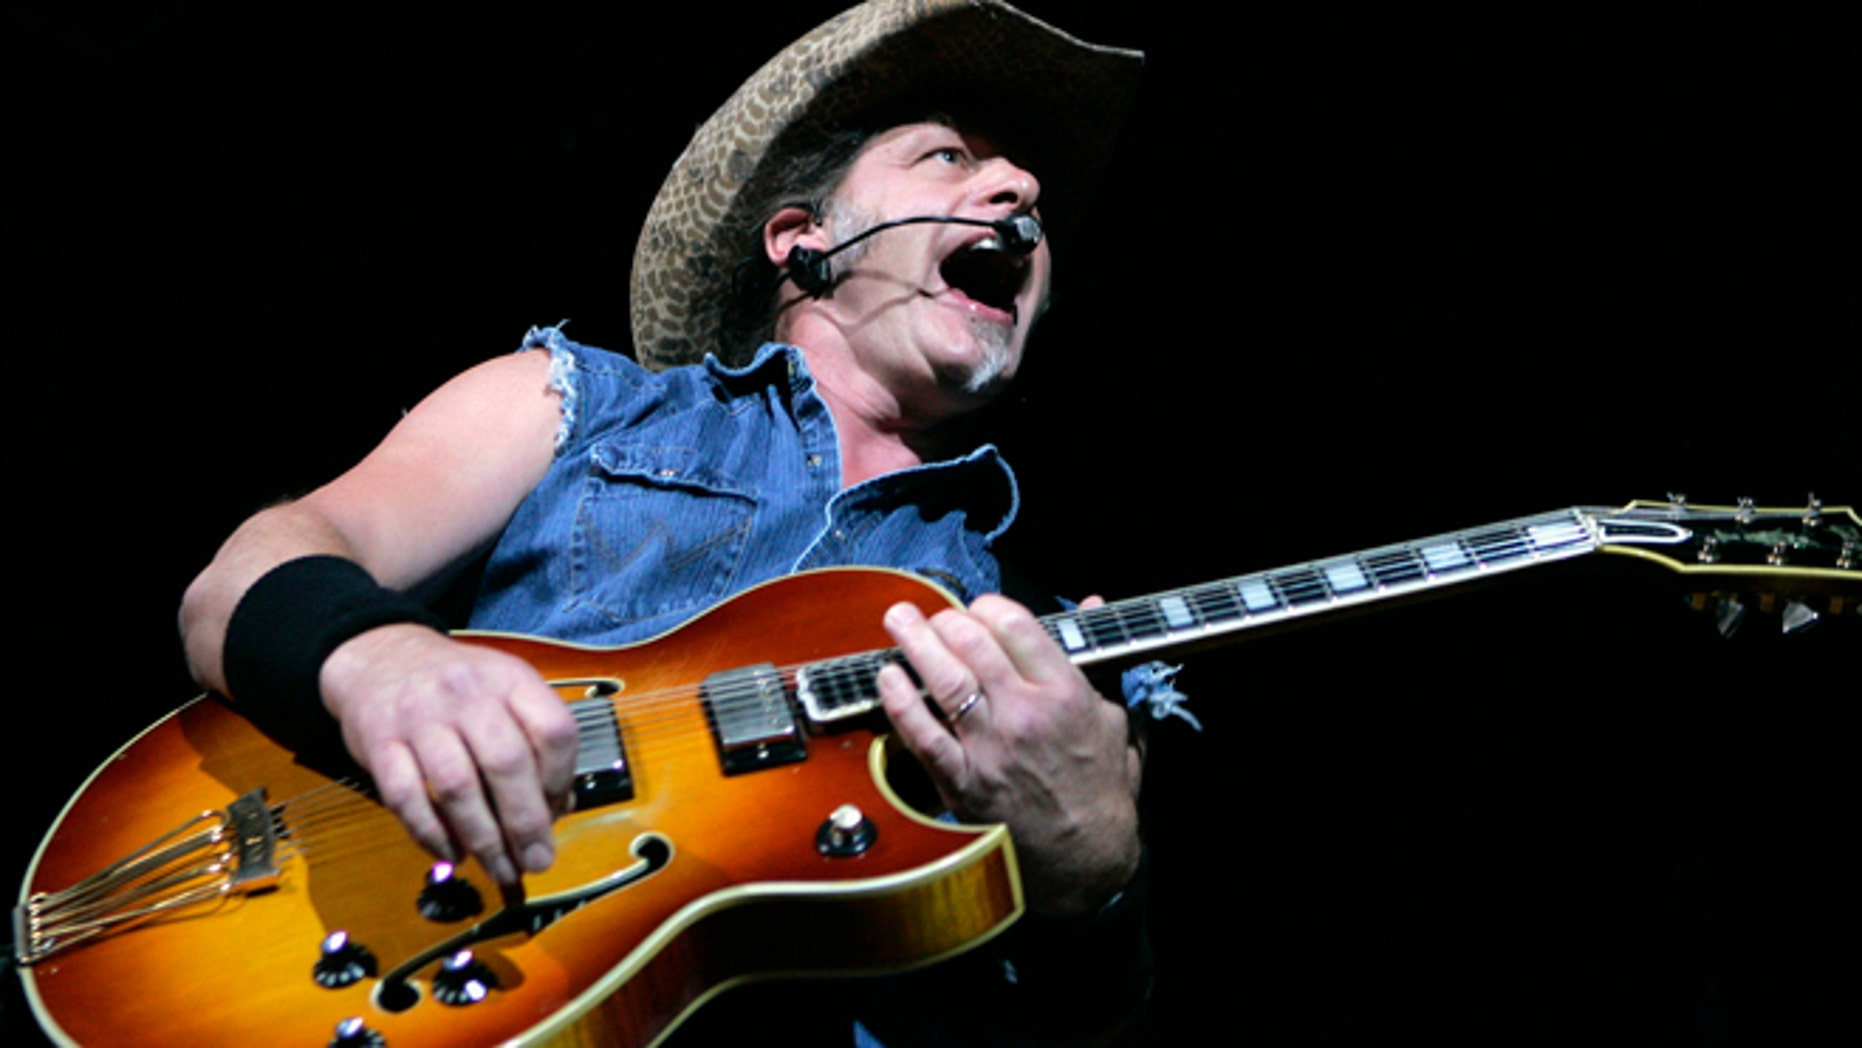 Ted Nugent performs at a concert at the House of Blues at the Mandalay Bay Resort in Las Vegas, Nevada in this file image from August 11, 2007.